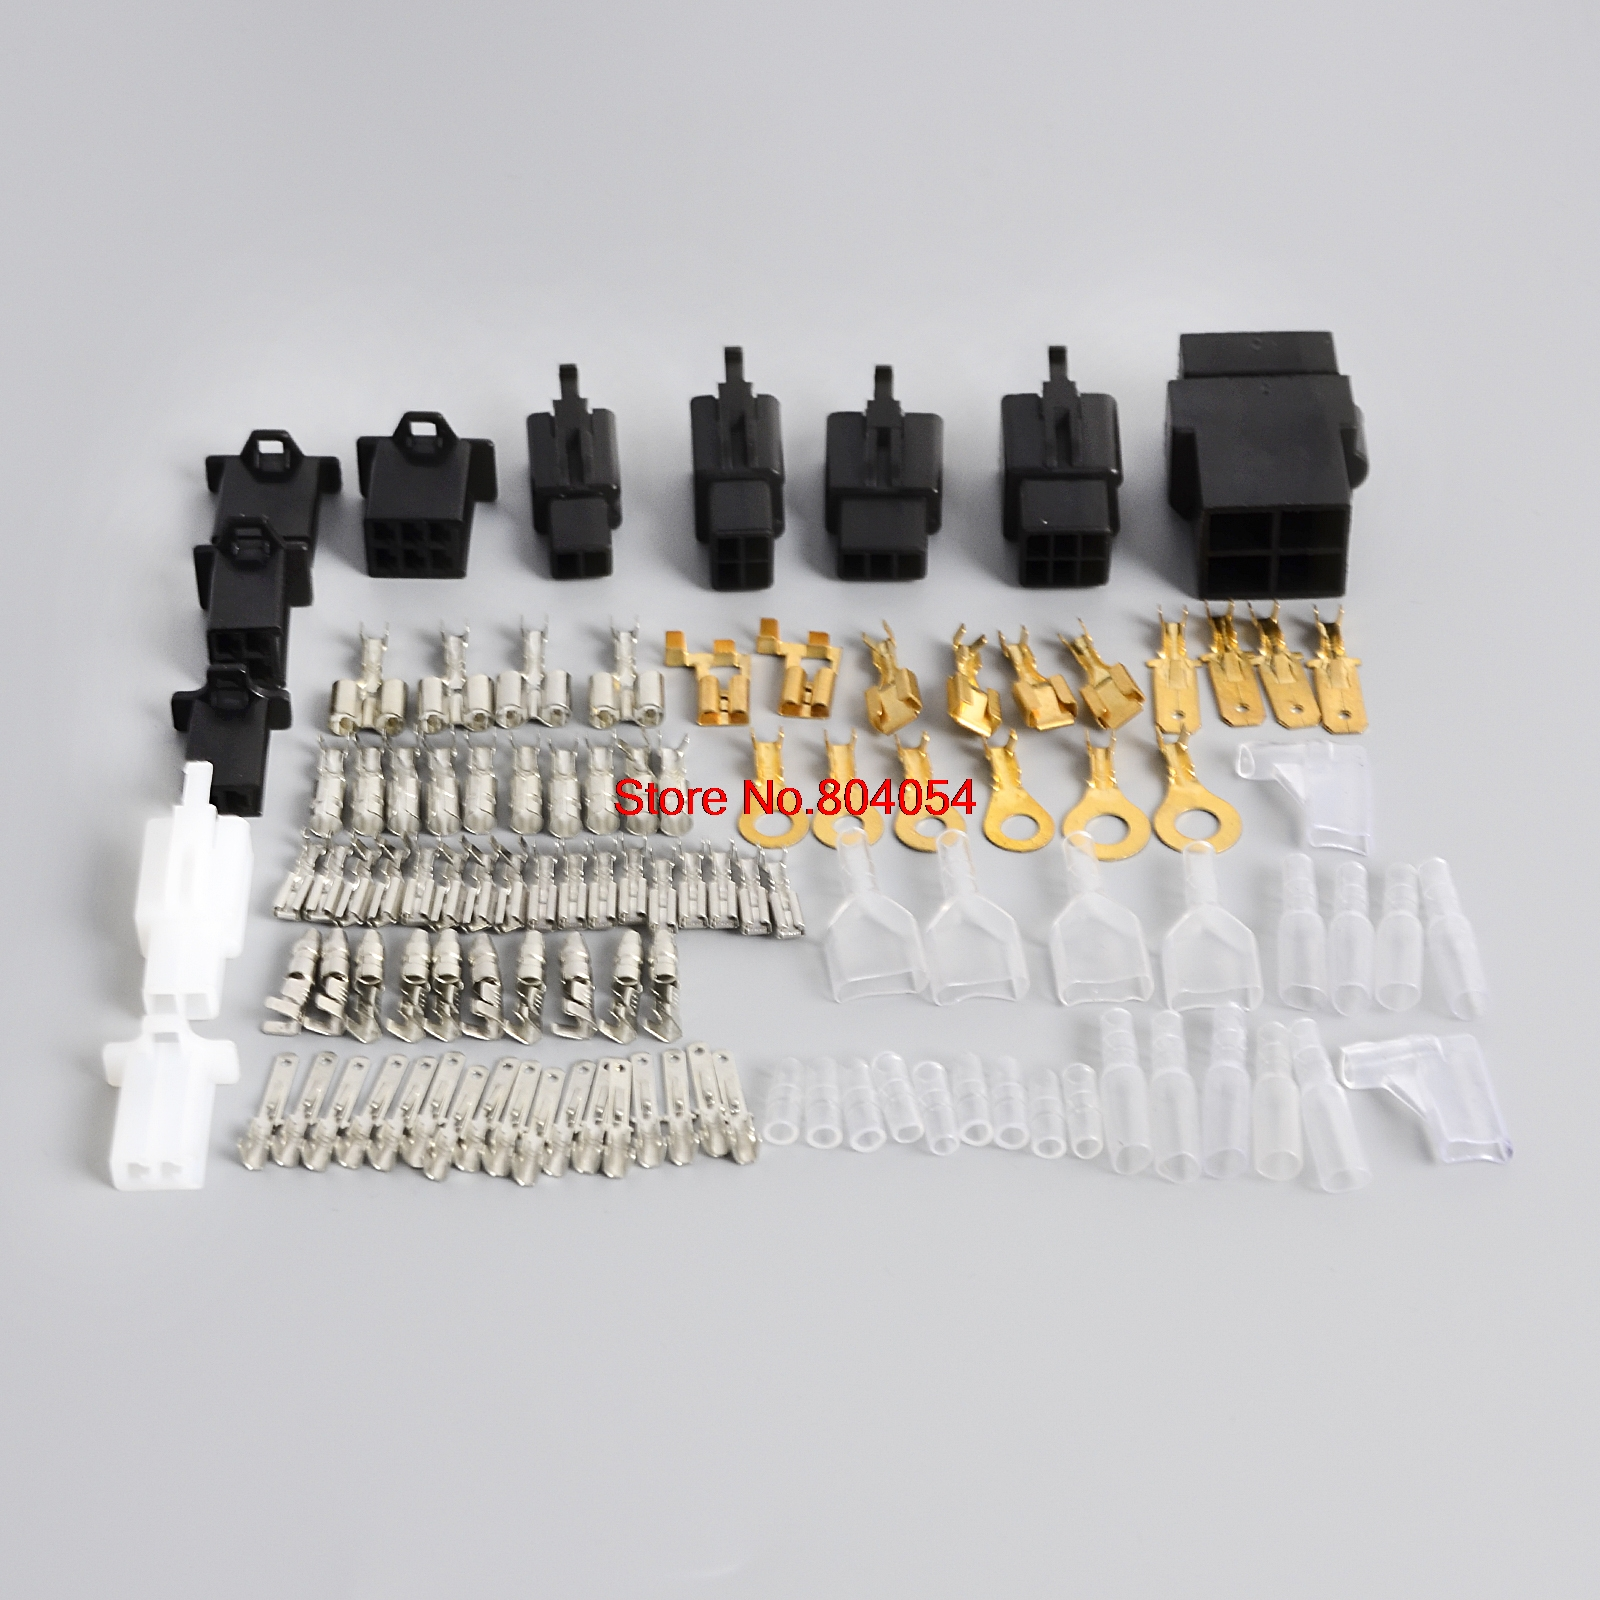 small resolution of for honda yamaha kawasaki suzuki ducati motorcycle electrical wiring harness loom repair kit plugs bullets connectors in fuses from automobiles